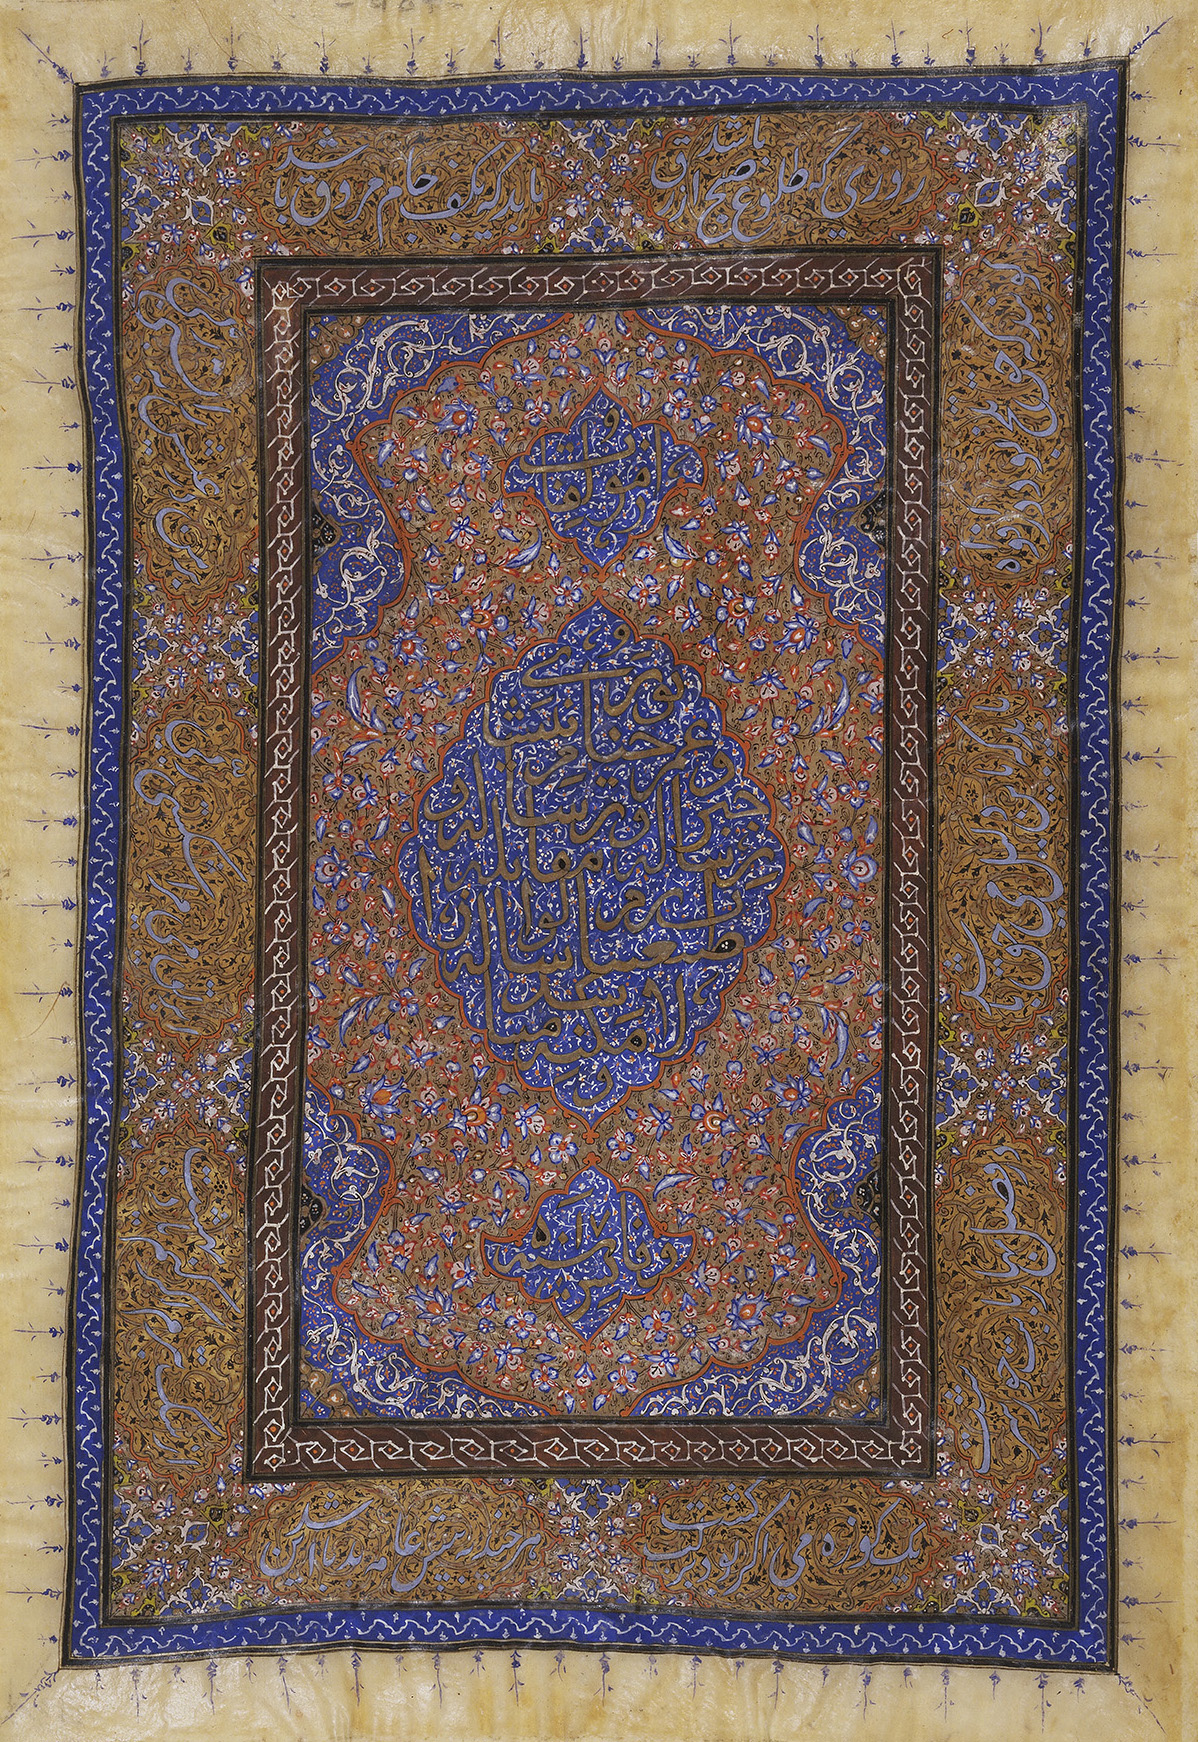 Unknown, 19th century, Persian, Qajar, Illuminated Page with the Poetry of Omar Khayyam